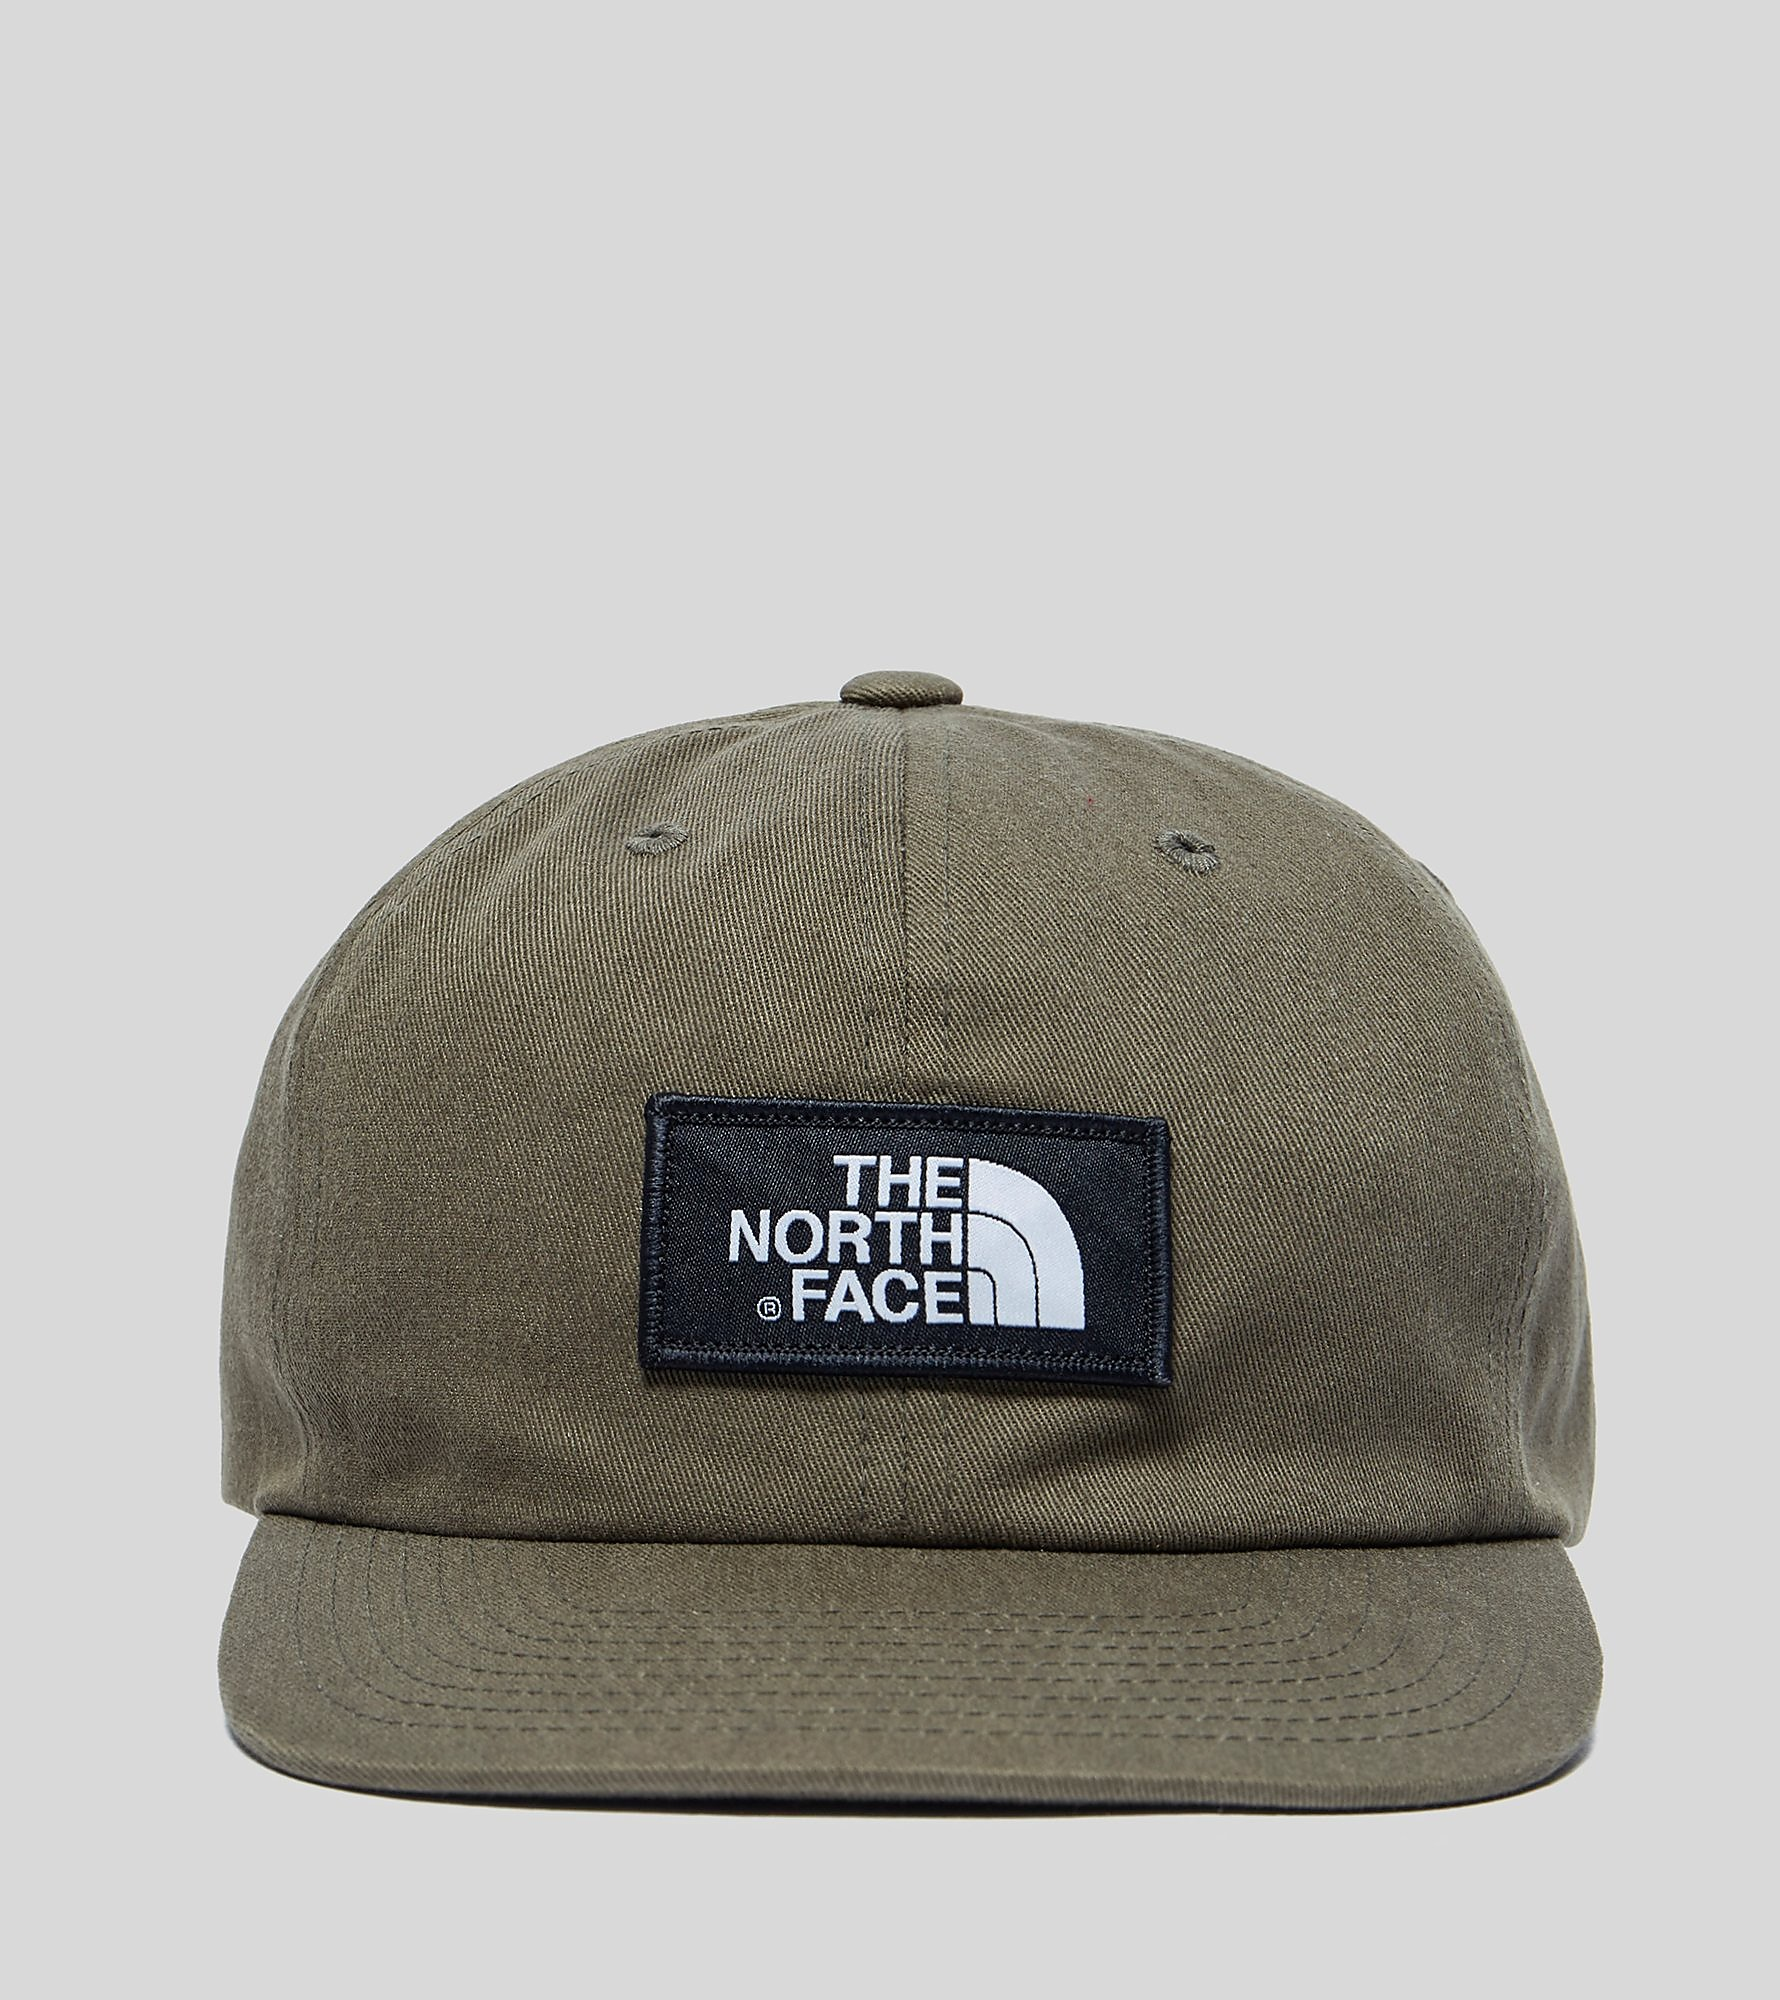 The North Face Box Logo Cap